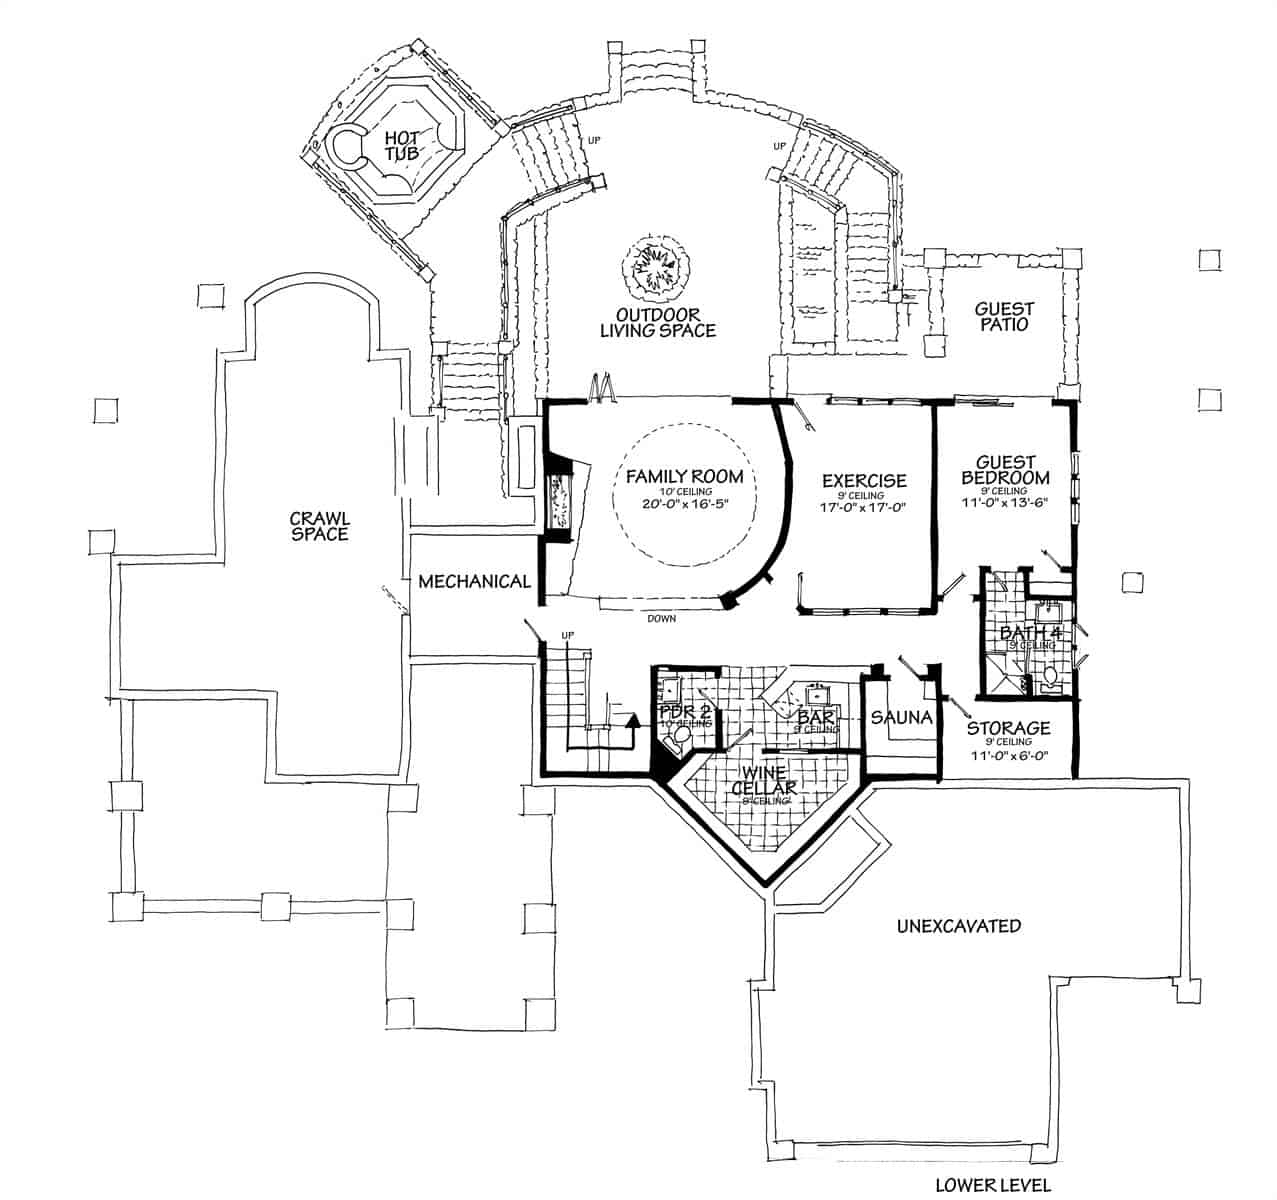 Lower level floor plan with a guest bedroom, exercise room, sauna, wet bar, wine cellar, and a family room that opens to the outdoor living space.